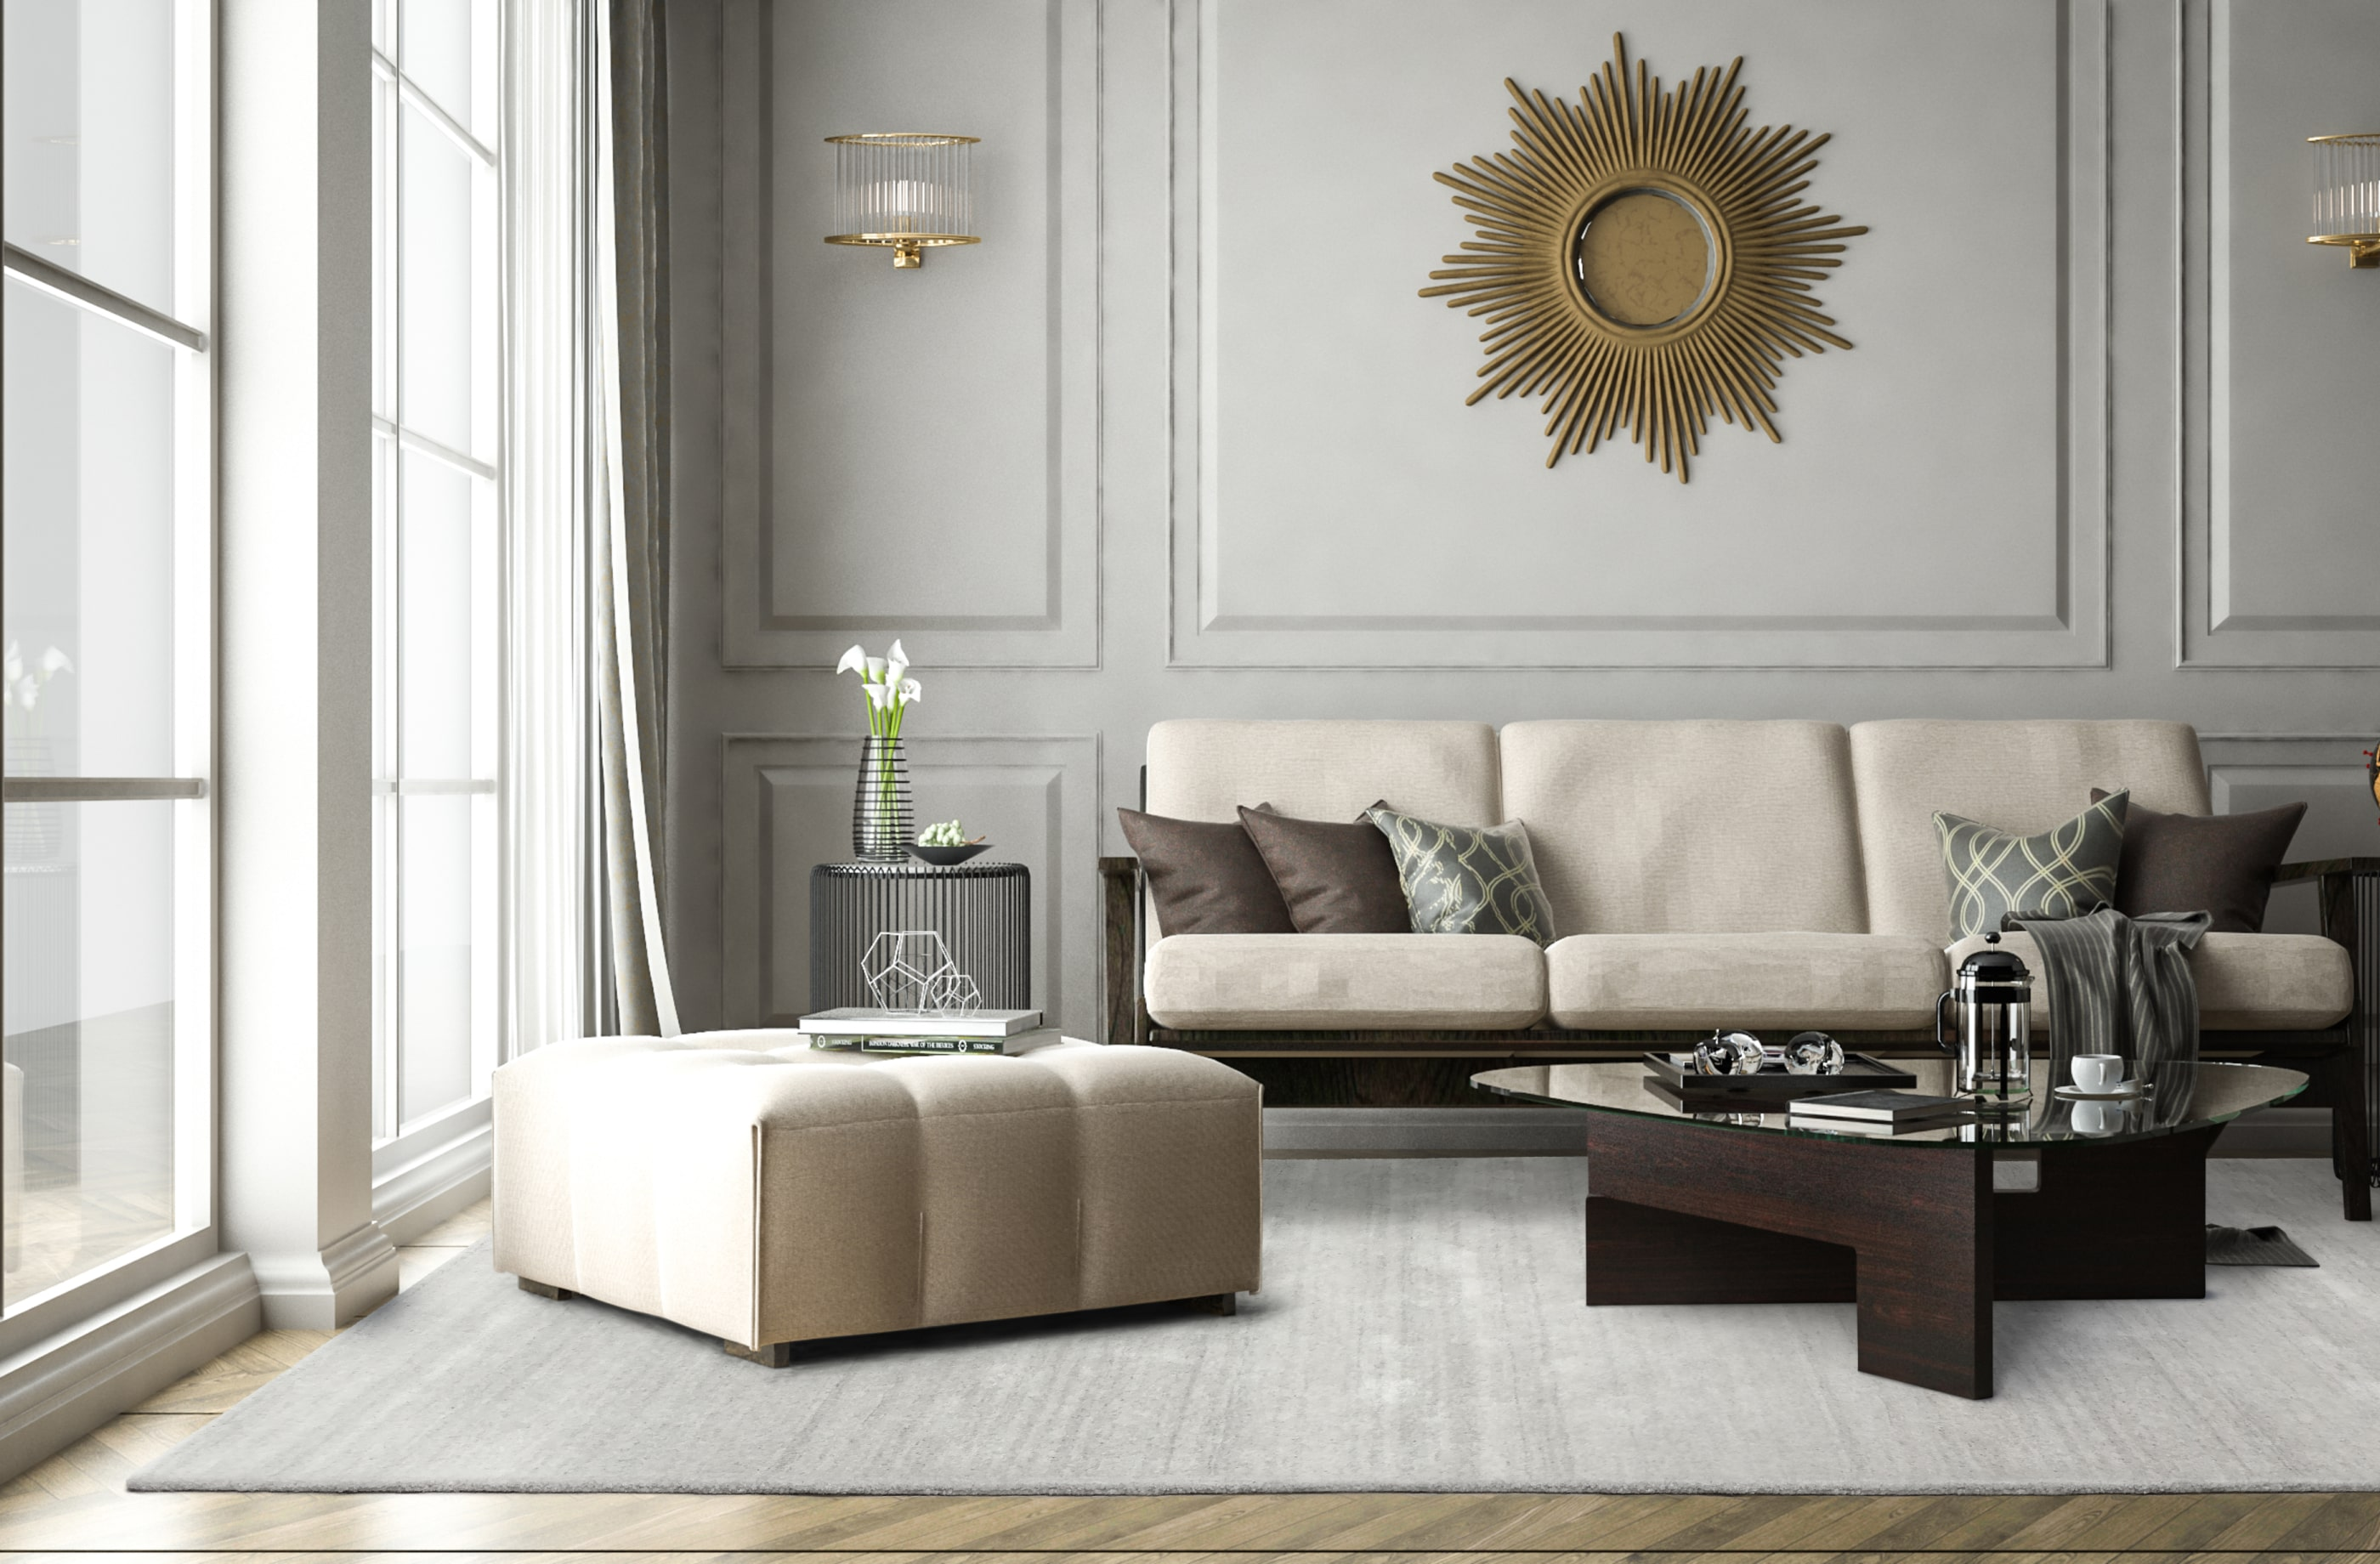 reference 3060-52-Neo Classique